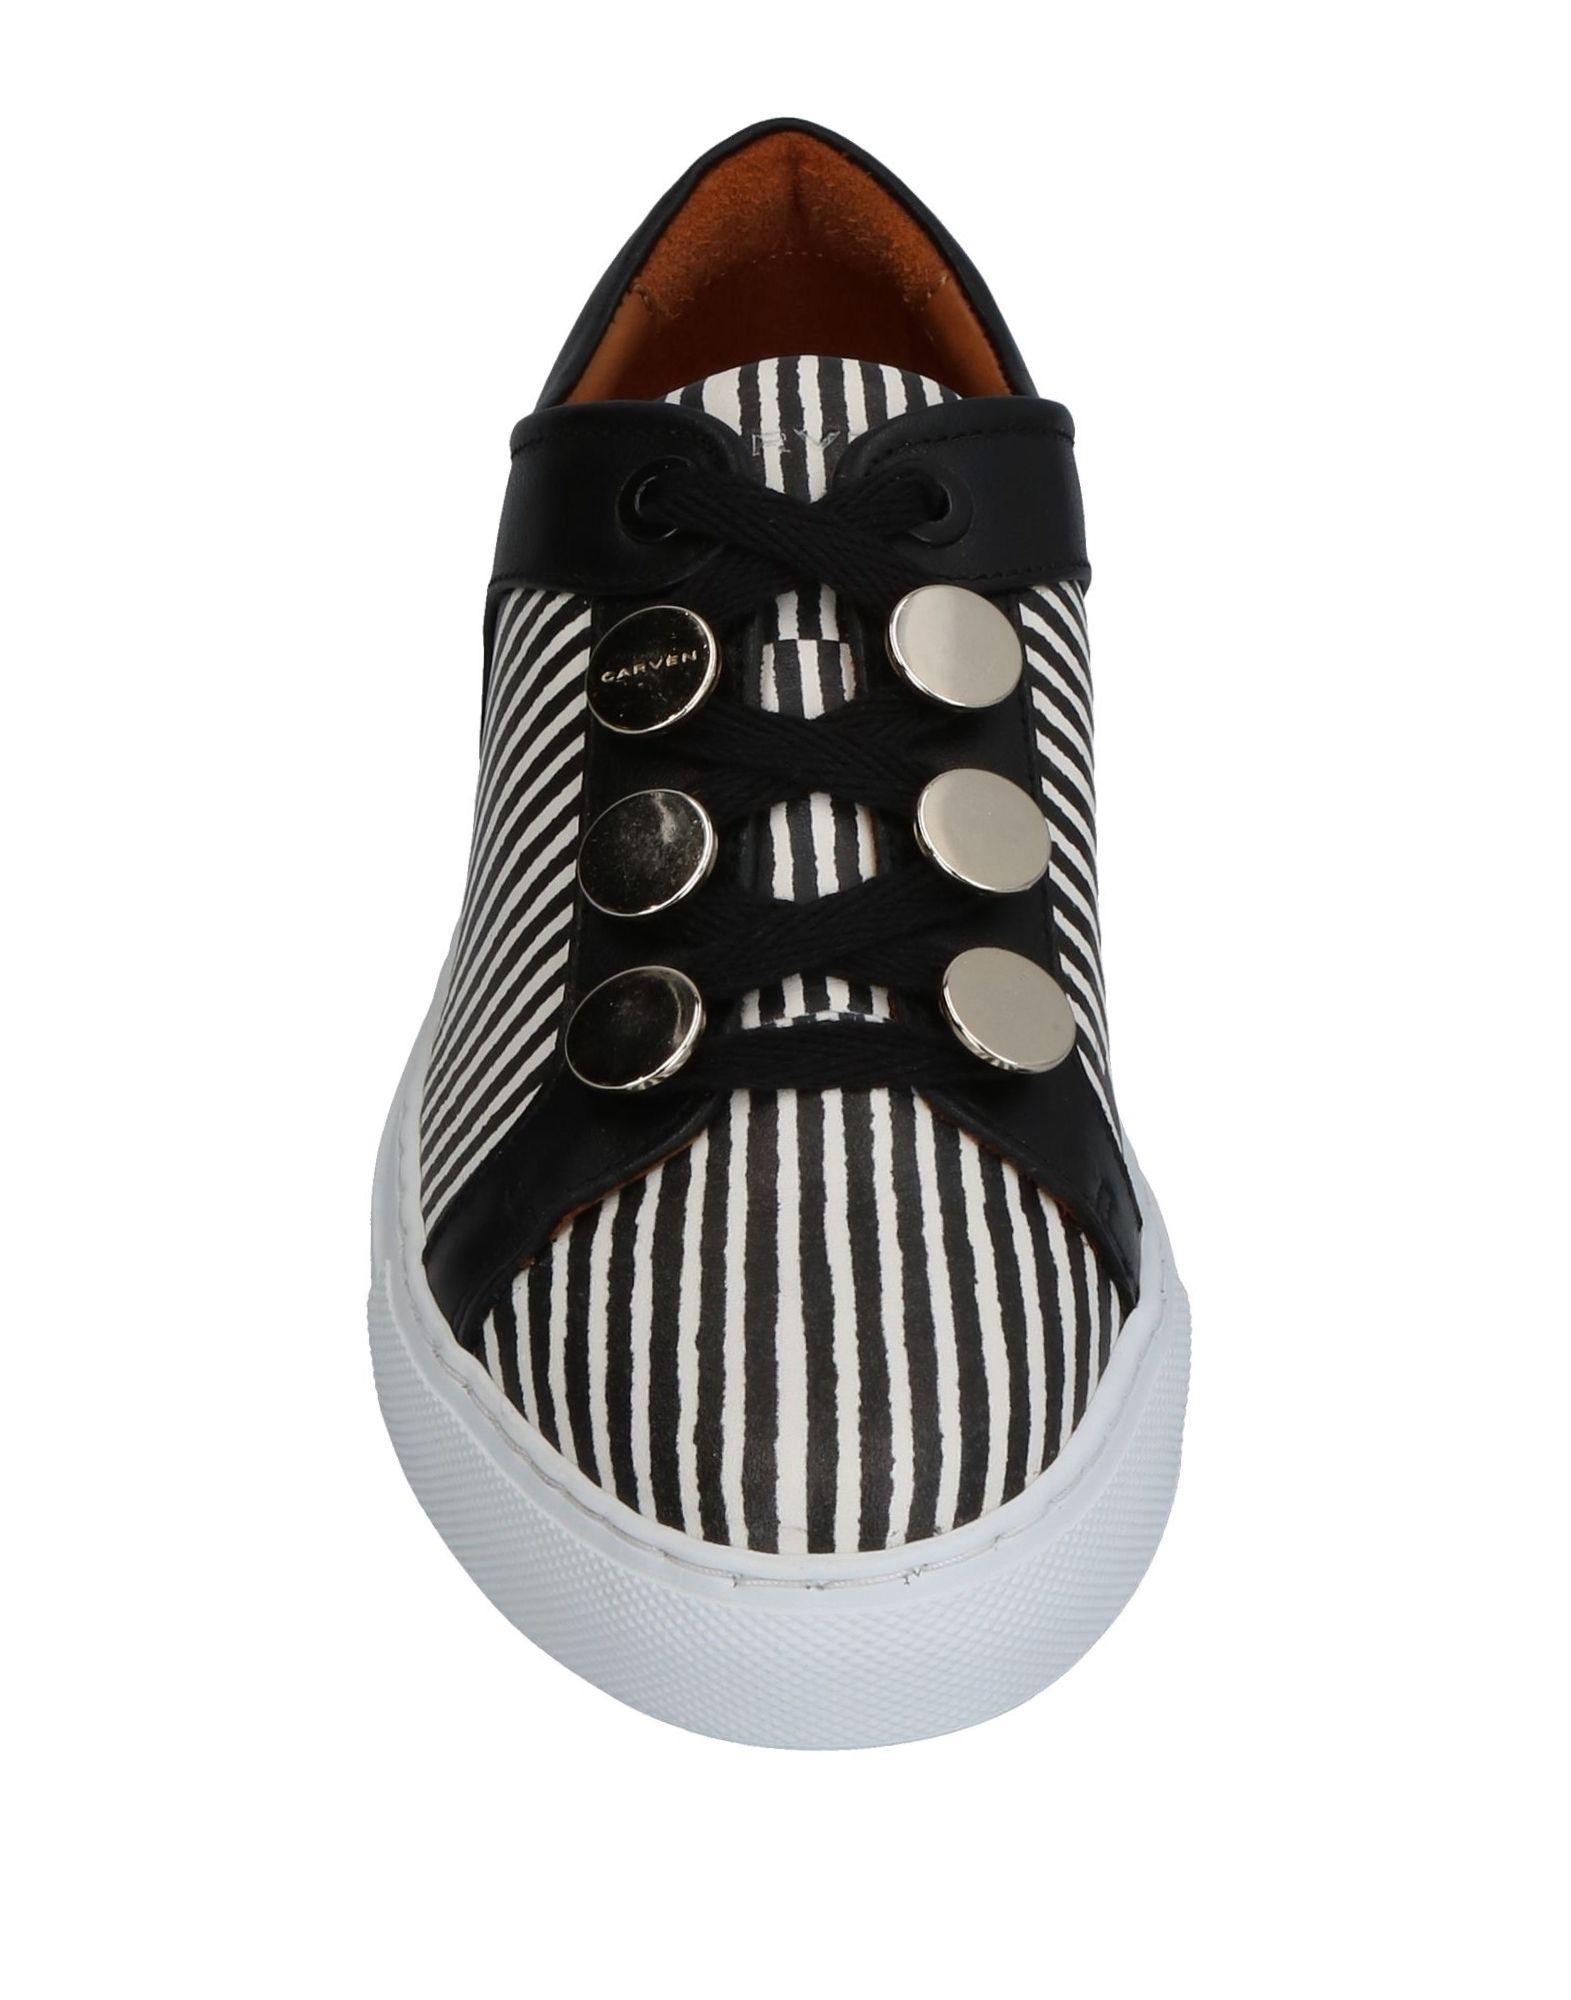 Carven Leather Resonance Sneakers in Black